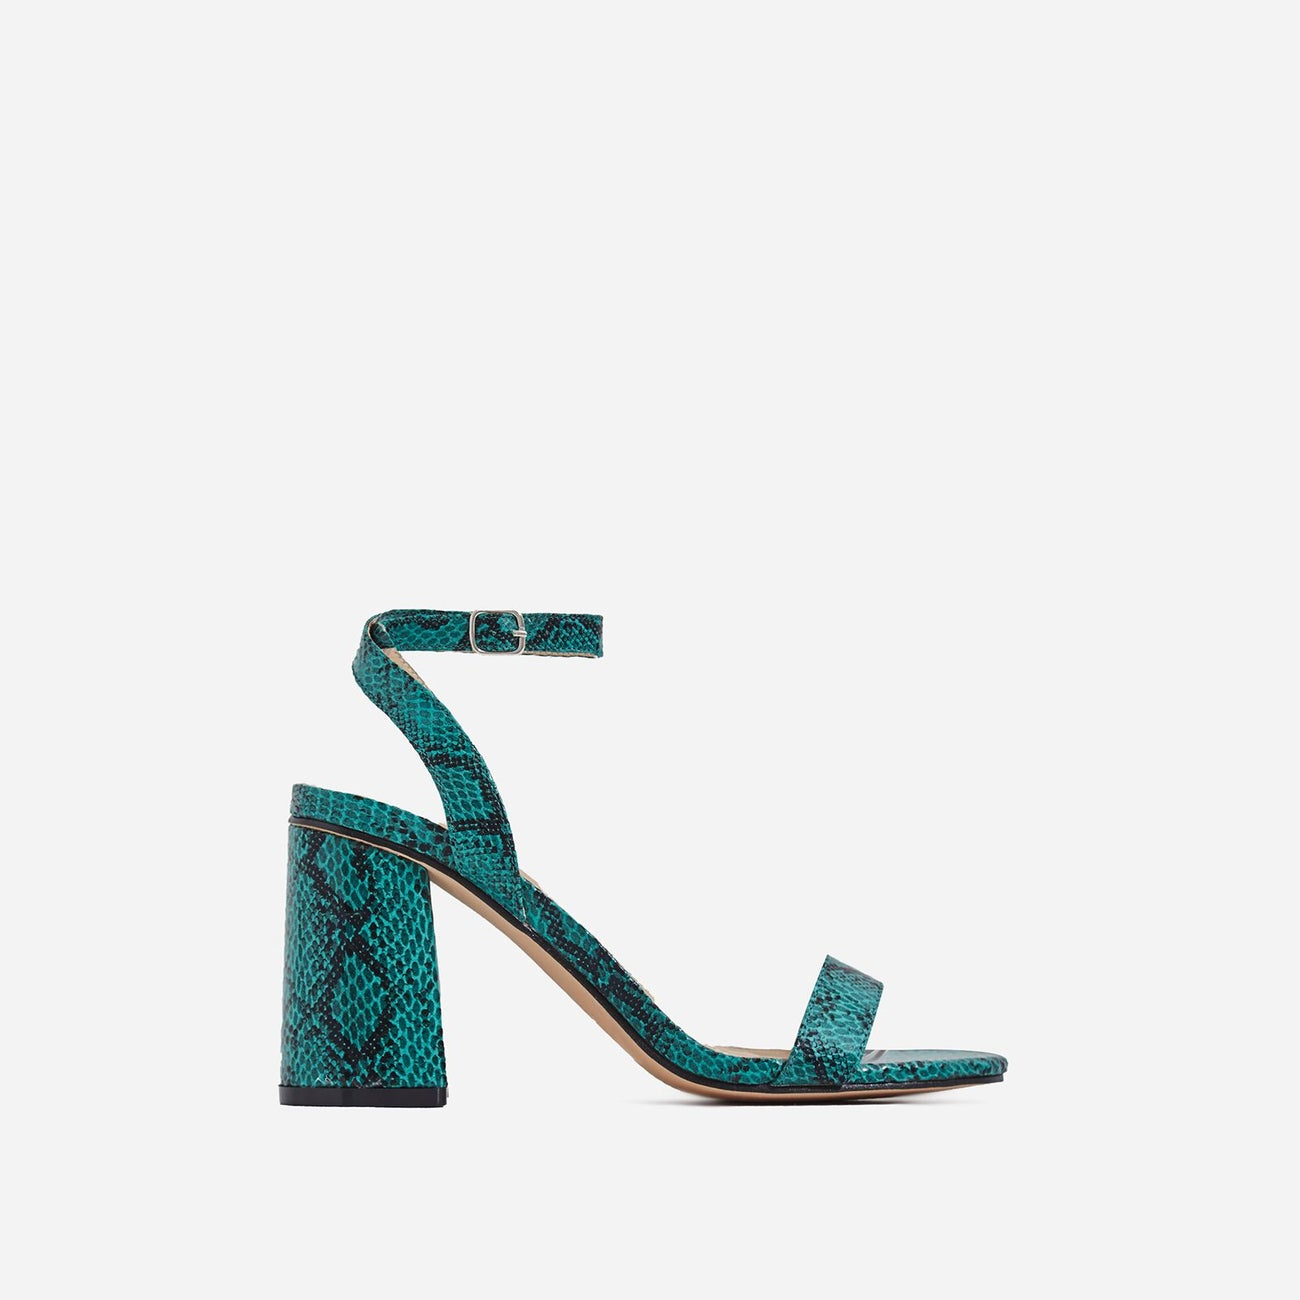 Nikita Midi Block Heel In Green Snake Print Faux Leather